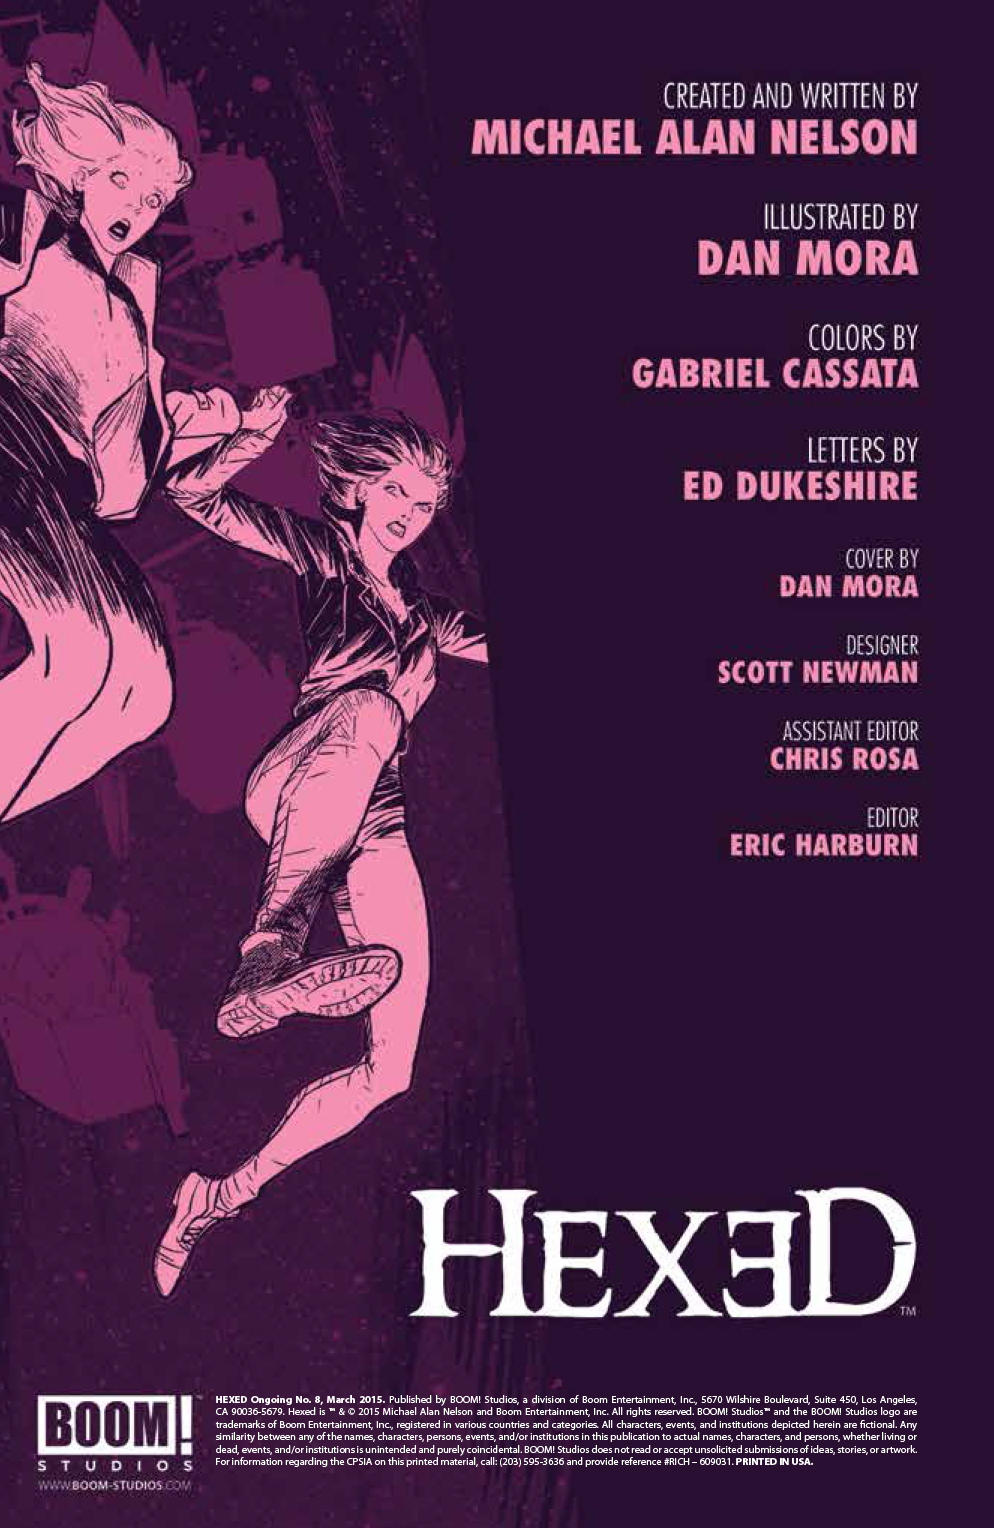 BOOM_Hexed_008_PRESS-2.jpg